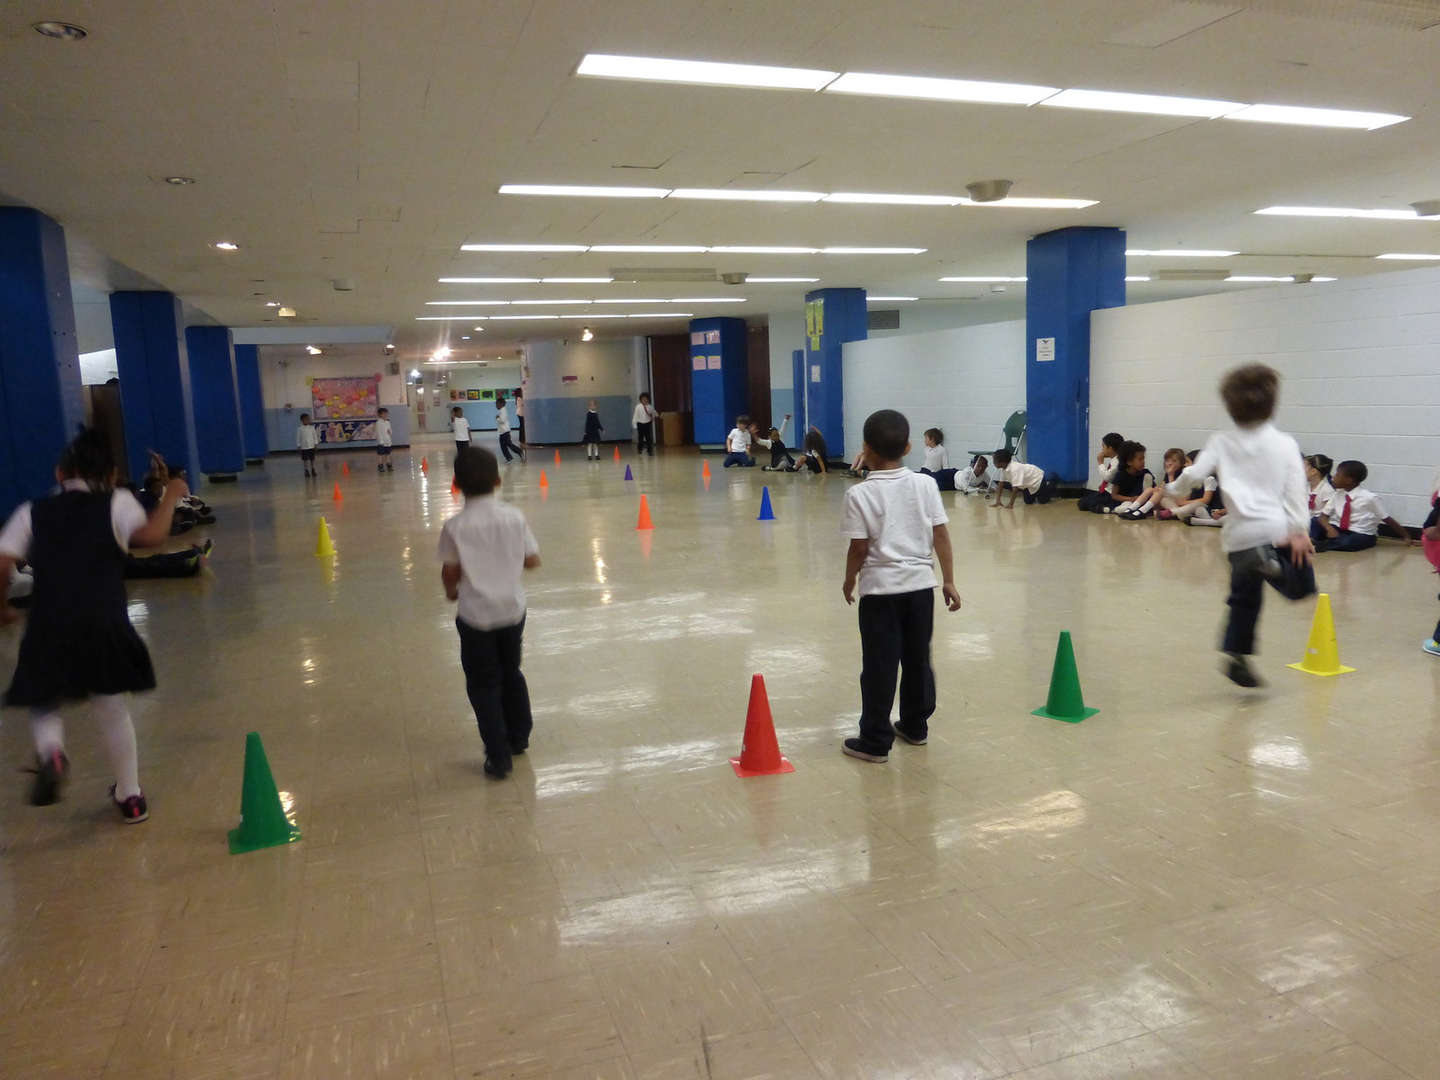 Students play a game using colorful cones